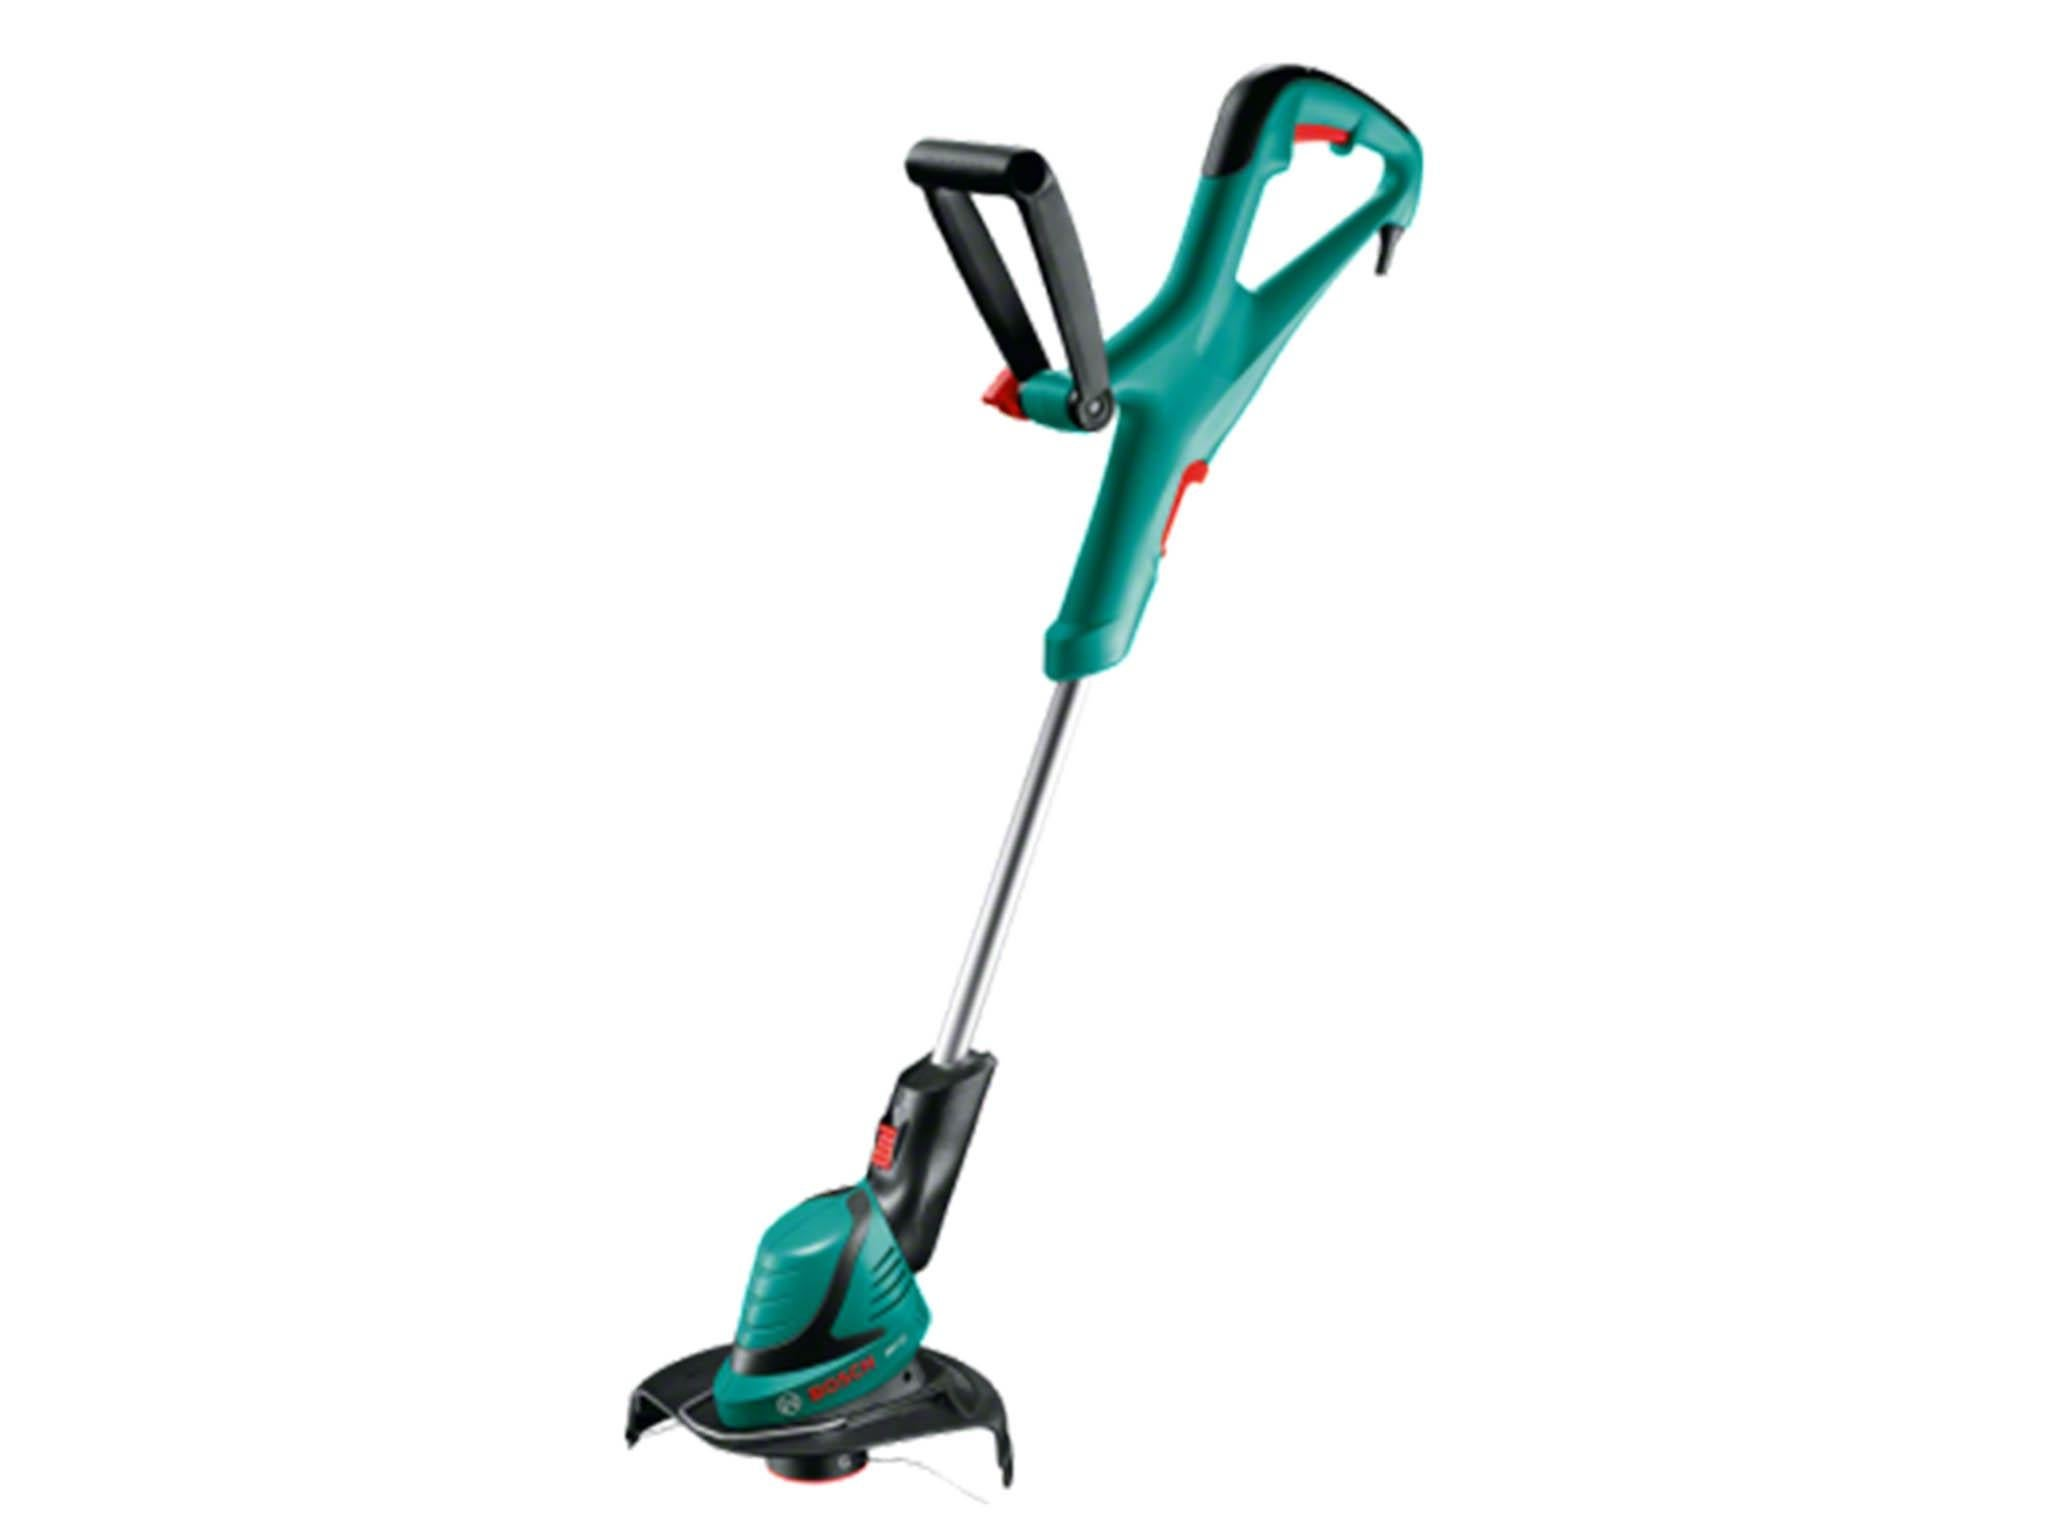 9 best grass trimmers | The Independent